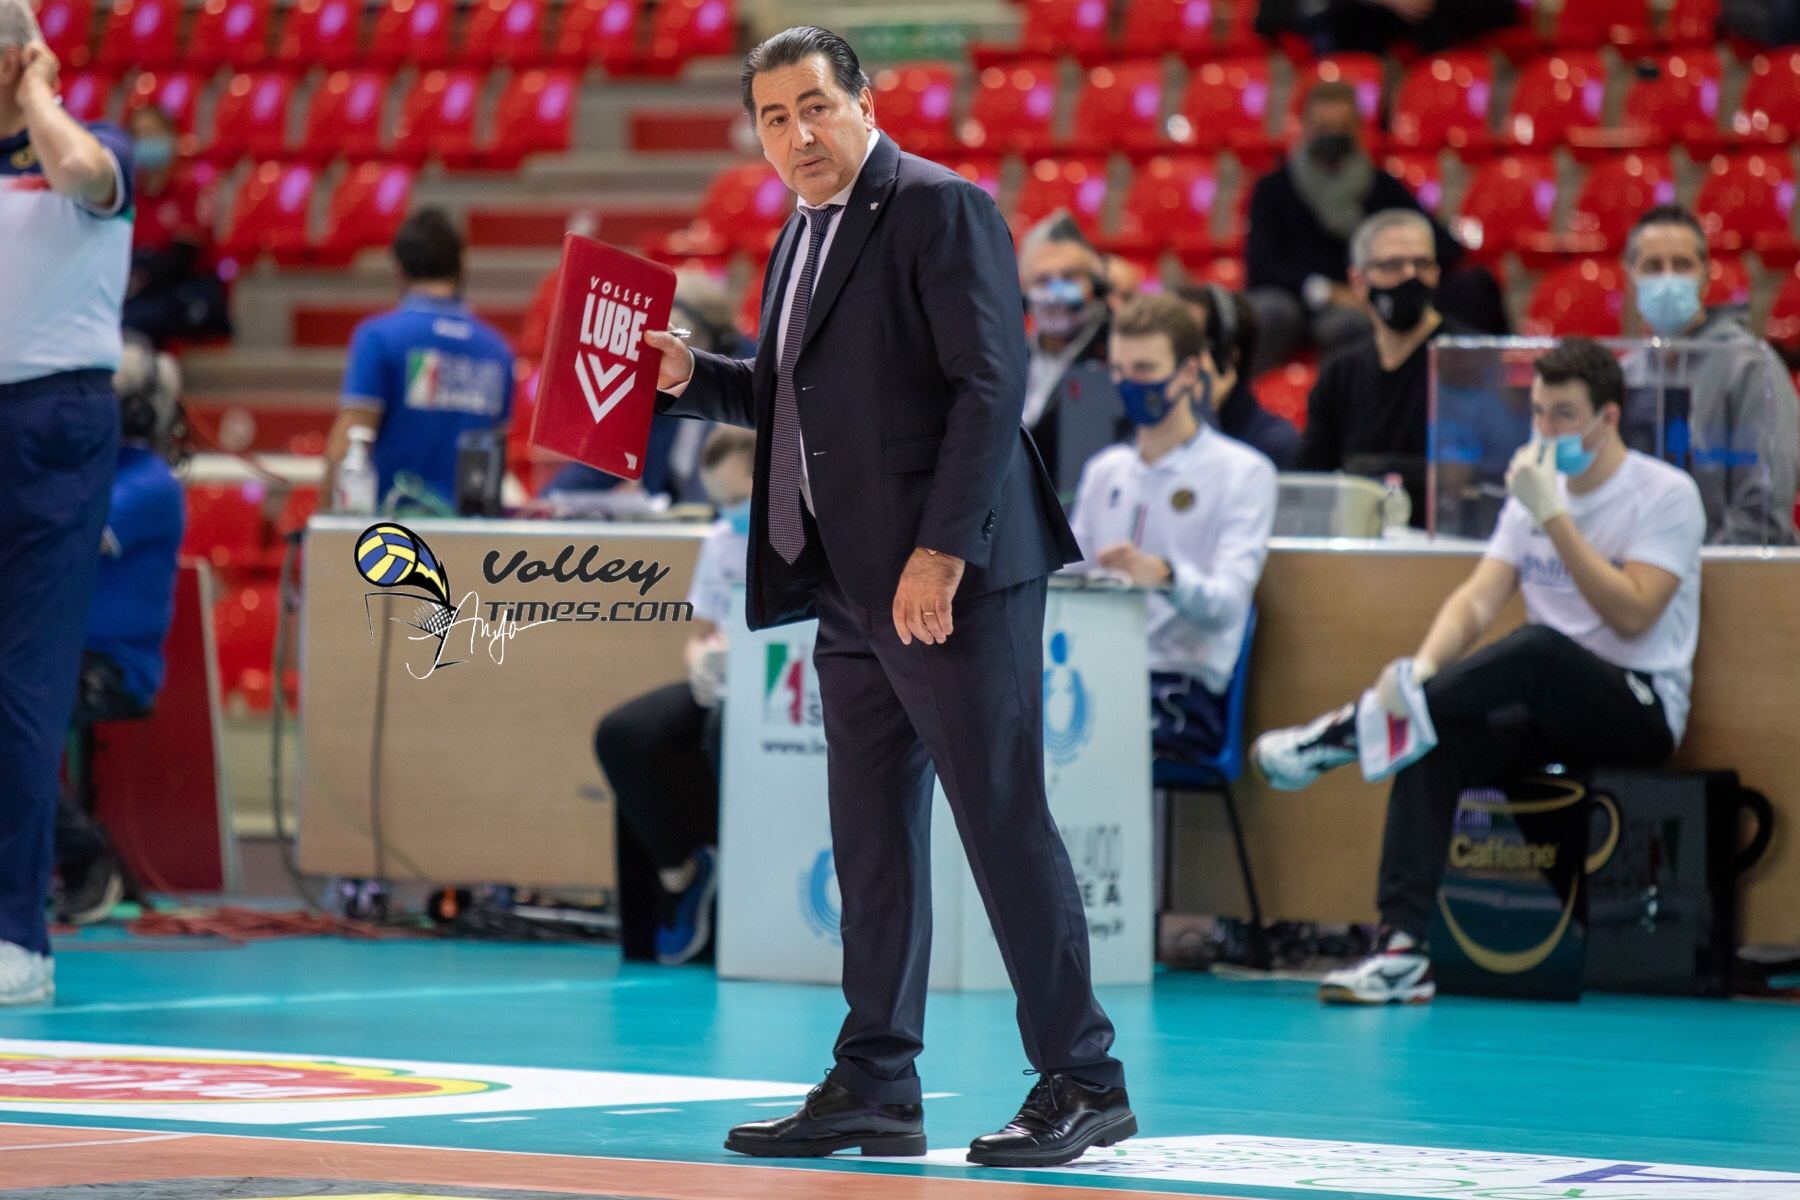 Italy: Lube and De Giorgi part ways. Blengini his substitute